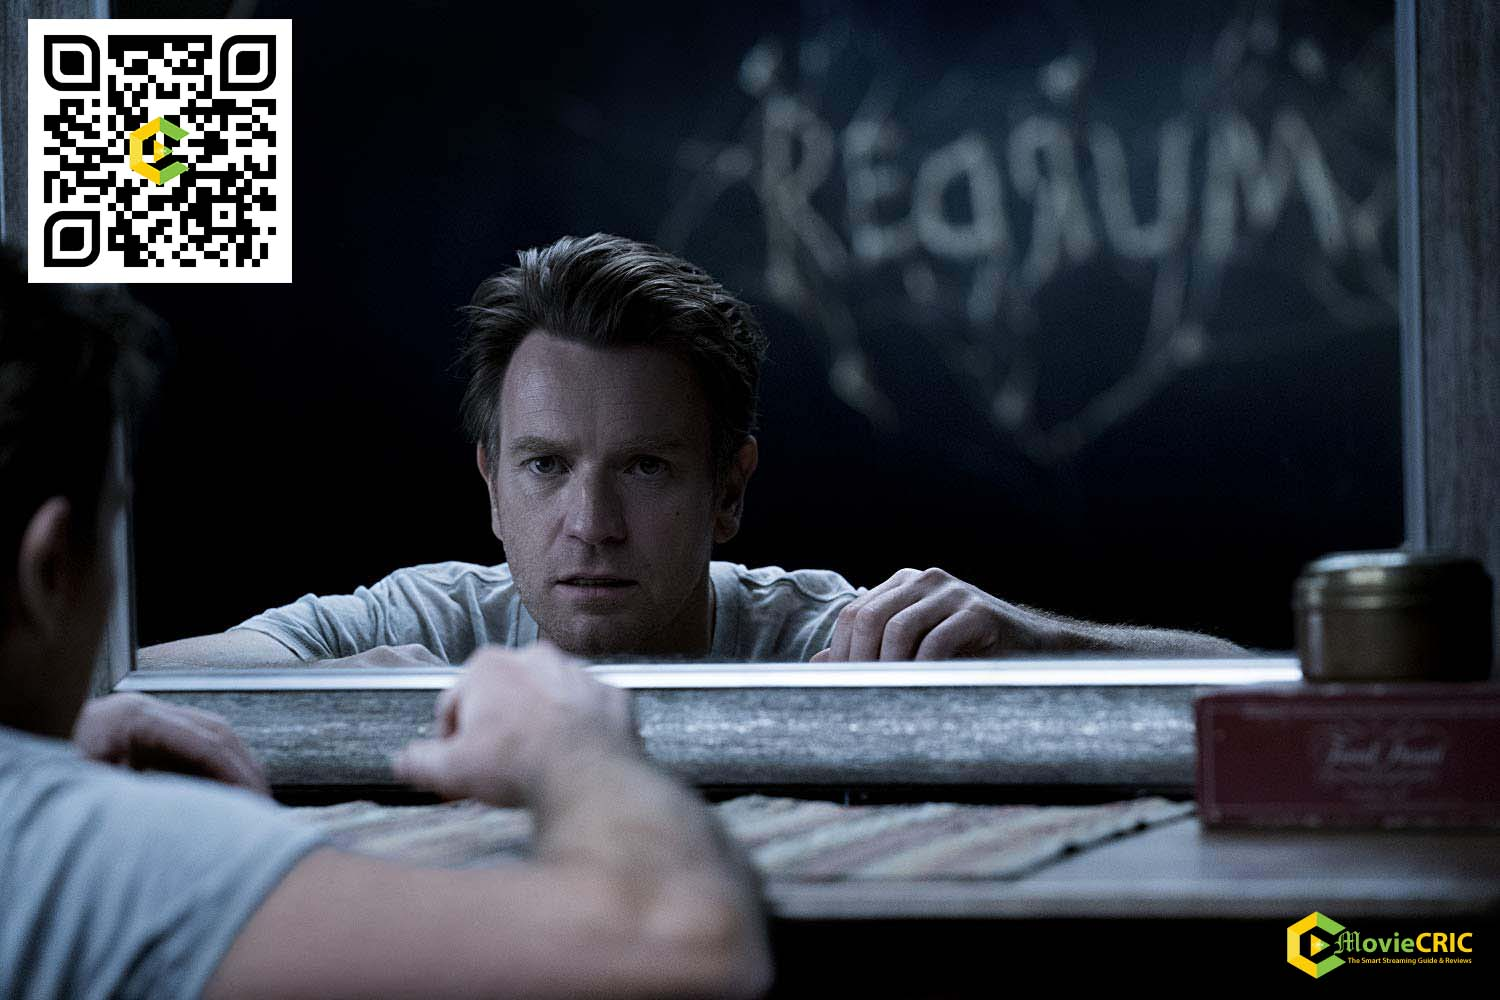 Doctor Sleep Streaming: How to watch the FULL movie online? Is it legitimate?